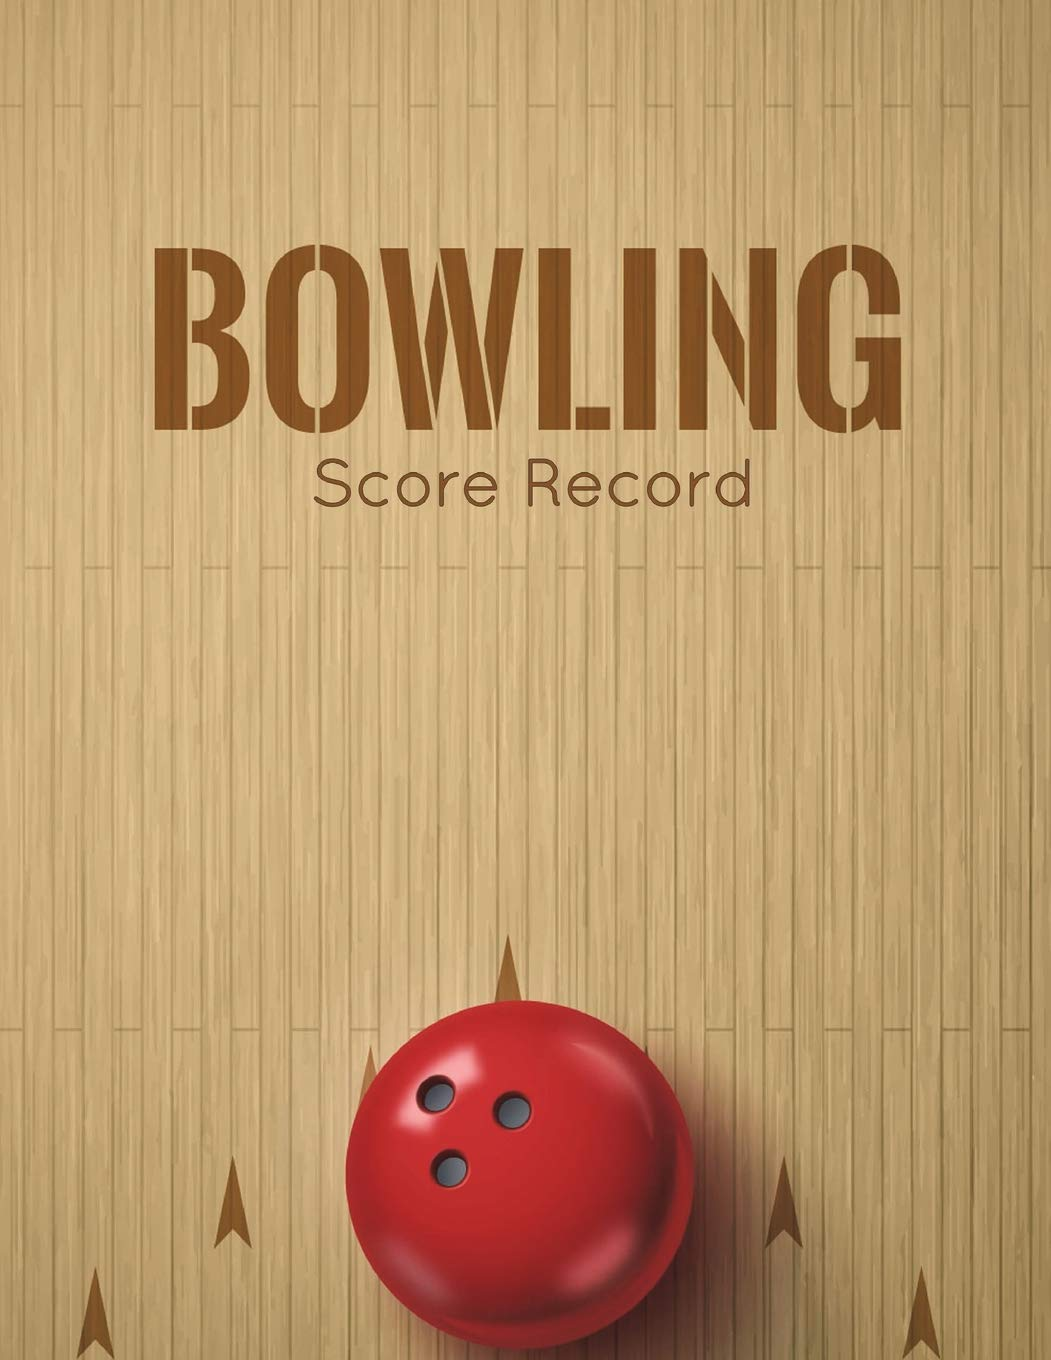 Bowling Score Record: Bowling Game Record Book, Bowler Score Keeper, Can be used in casual or tournament play, 16 players who bowl 10 frames, 100 Pages ebook